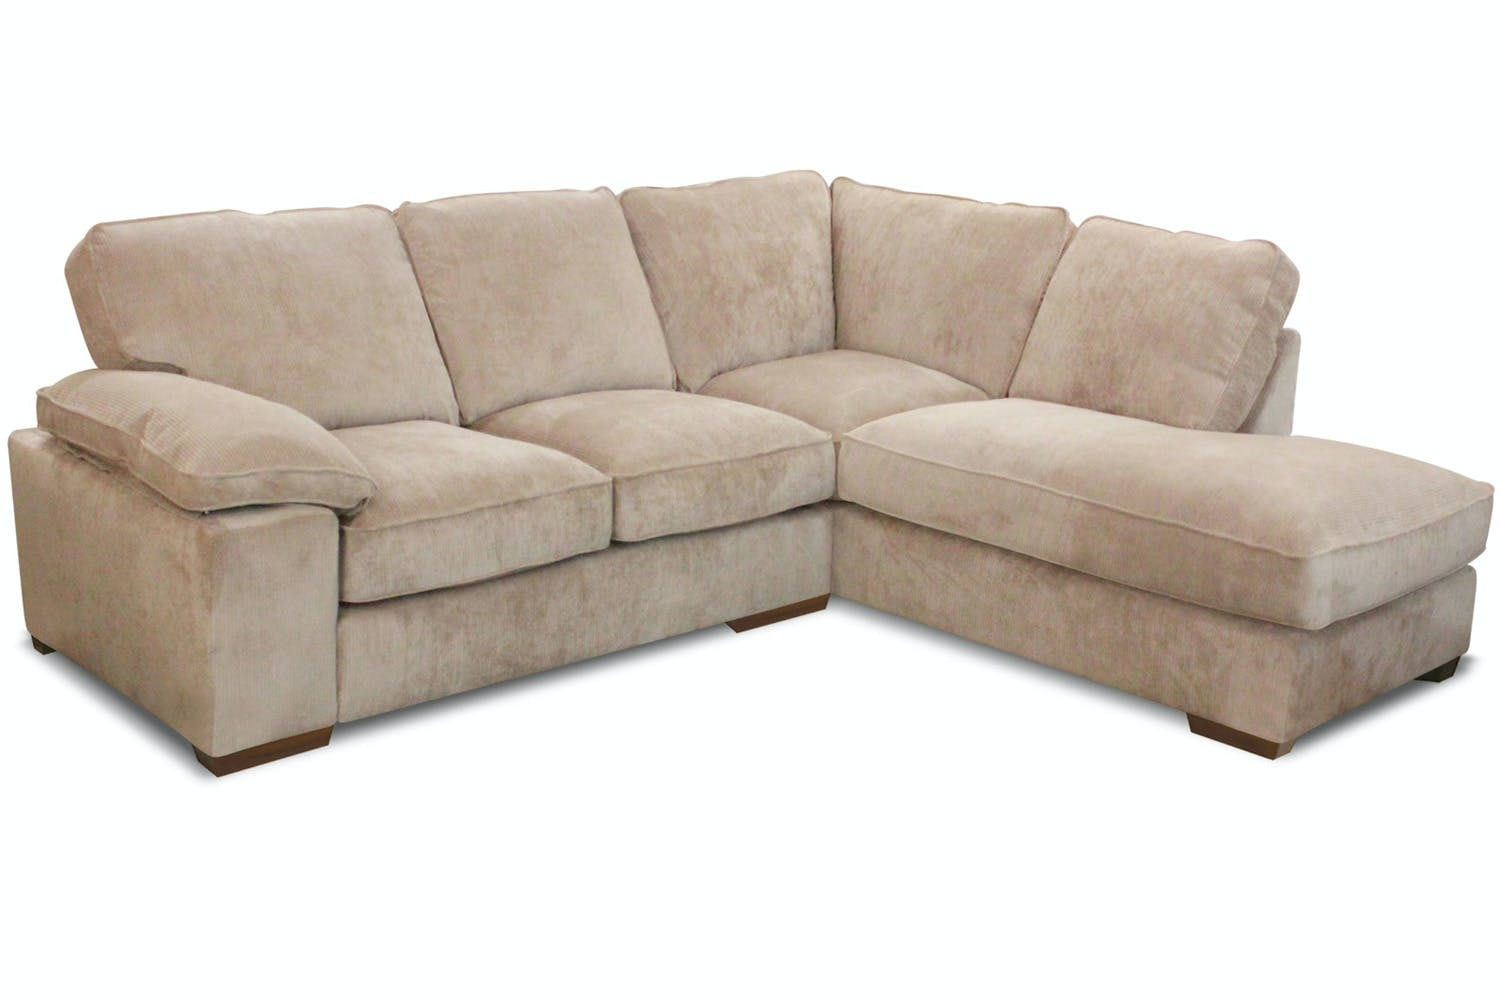 Utah Corner Sofa With Sofa Bed Harvey Norman Harvey Norman Ireland